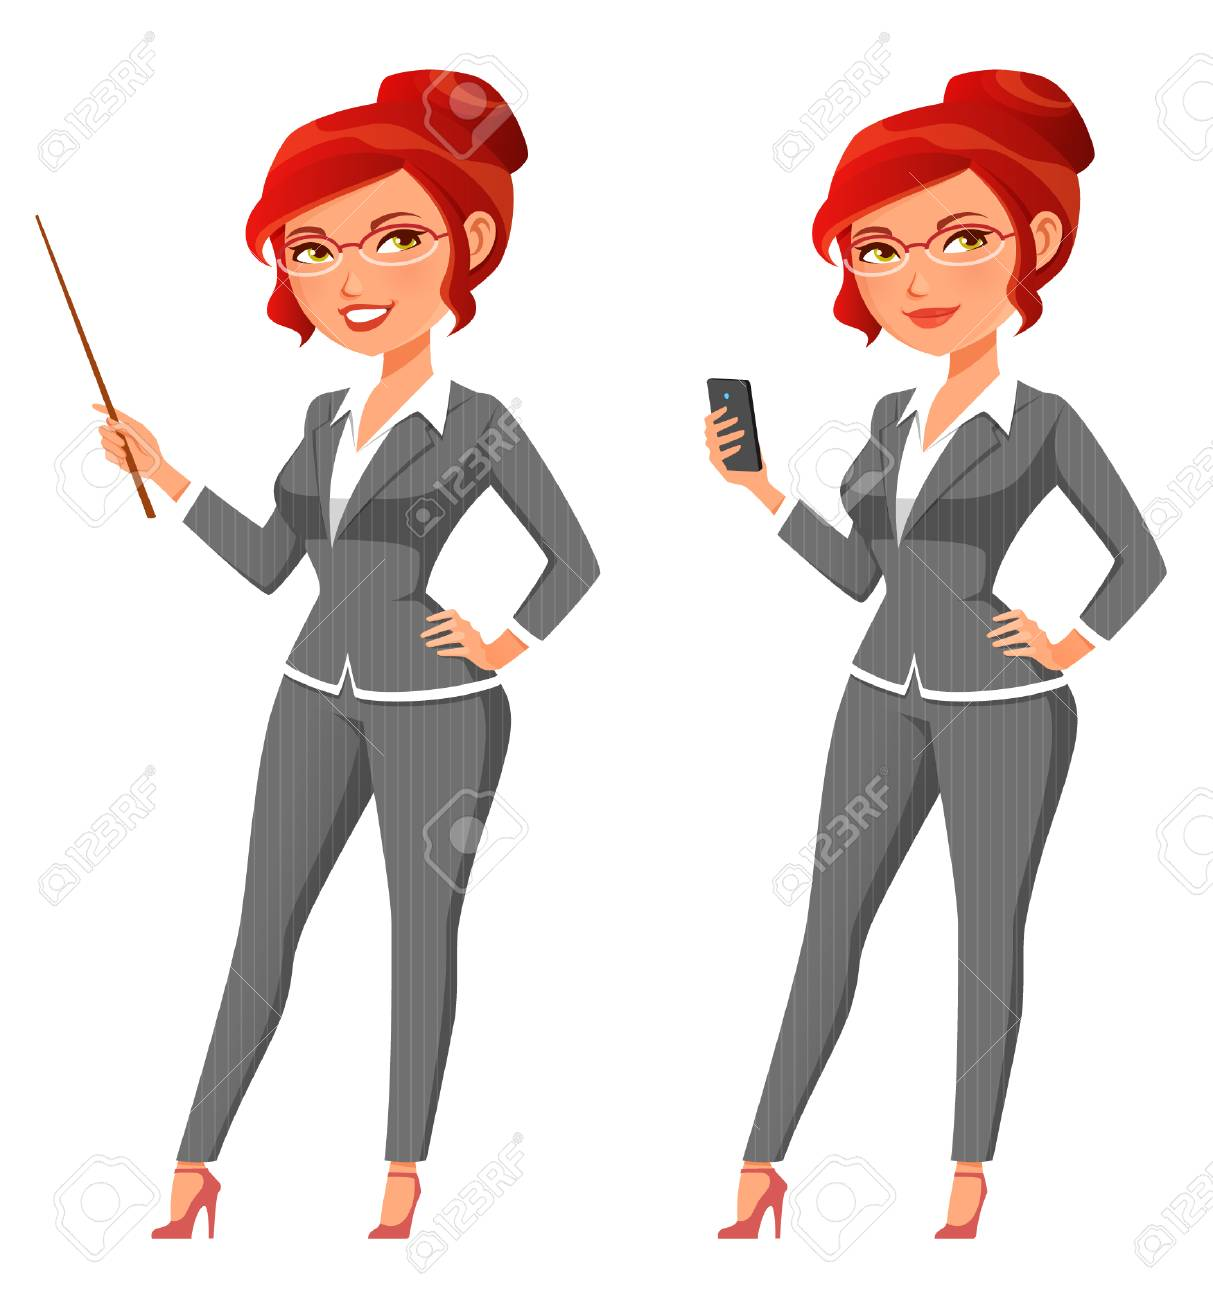 Funny Cartoon Business Woman Holding A Pointer Or A Cell Phone Royalty Free Cliparts Vectors And Stock Illustration Image 96577679